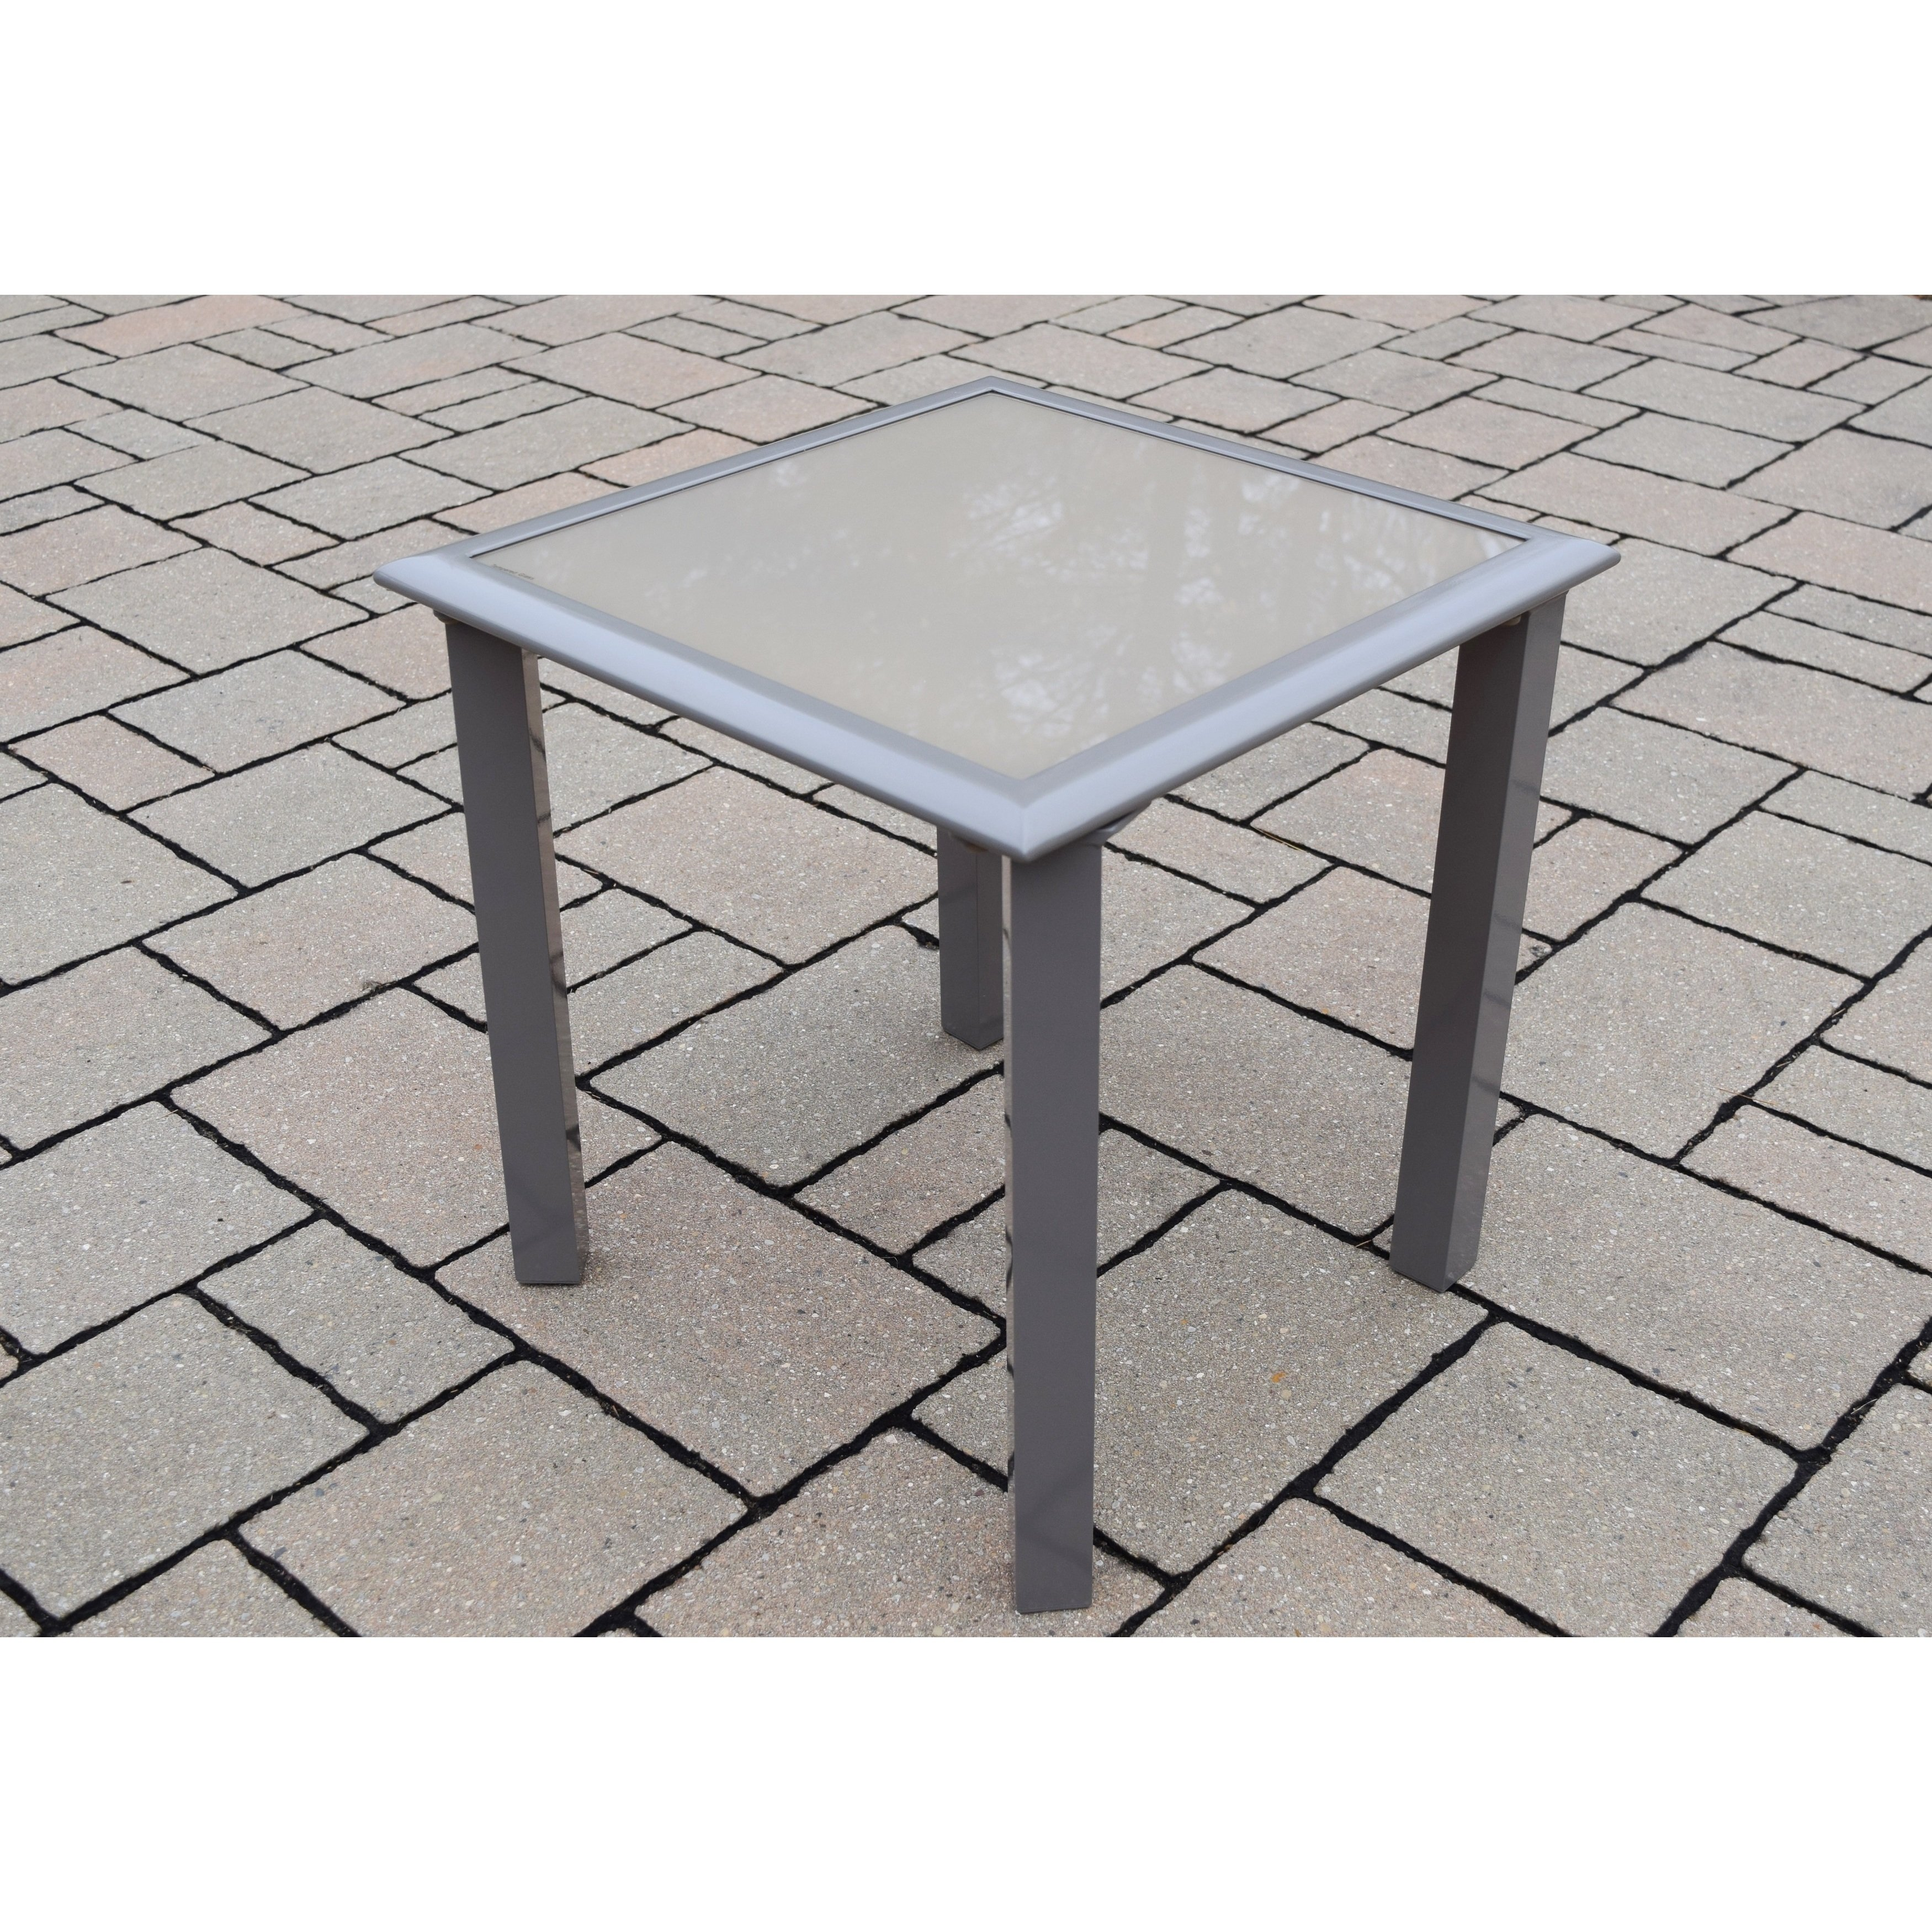 sydney aluminum glass screen printed side table free shipping cream colored metal inch outdoor entryway with shelves ikea storage drawers tiffany style bedside lamps black wire